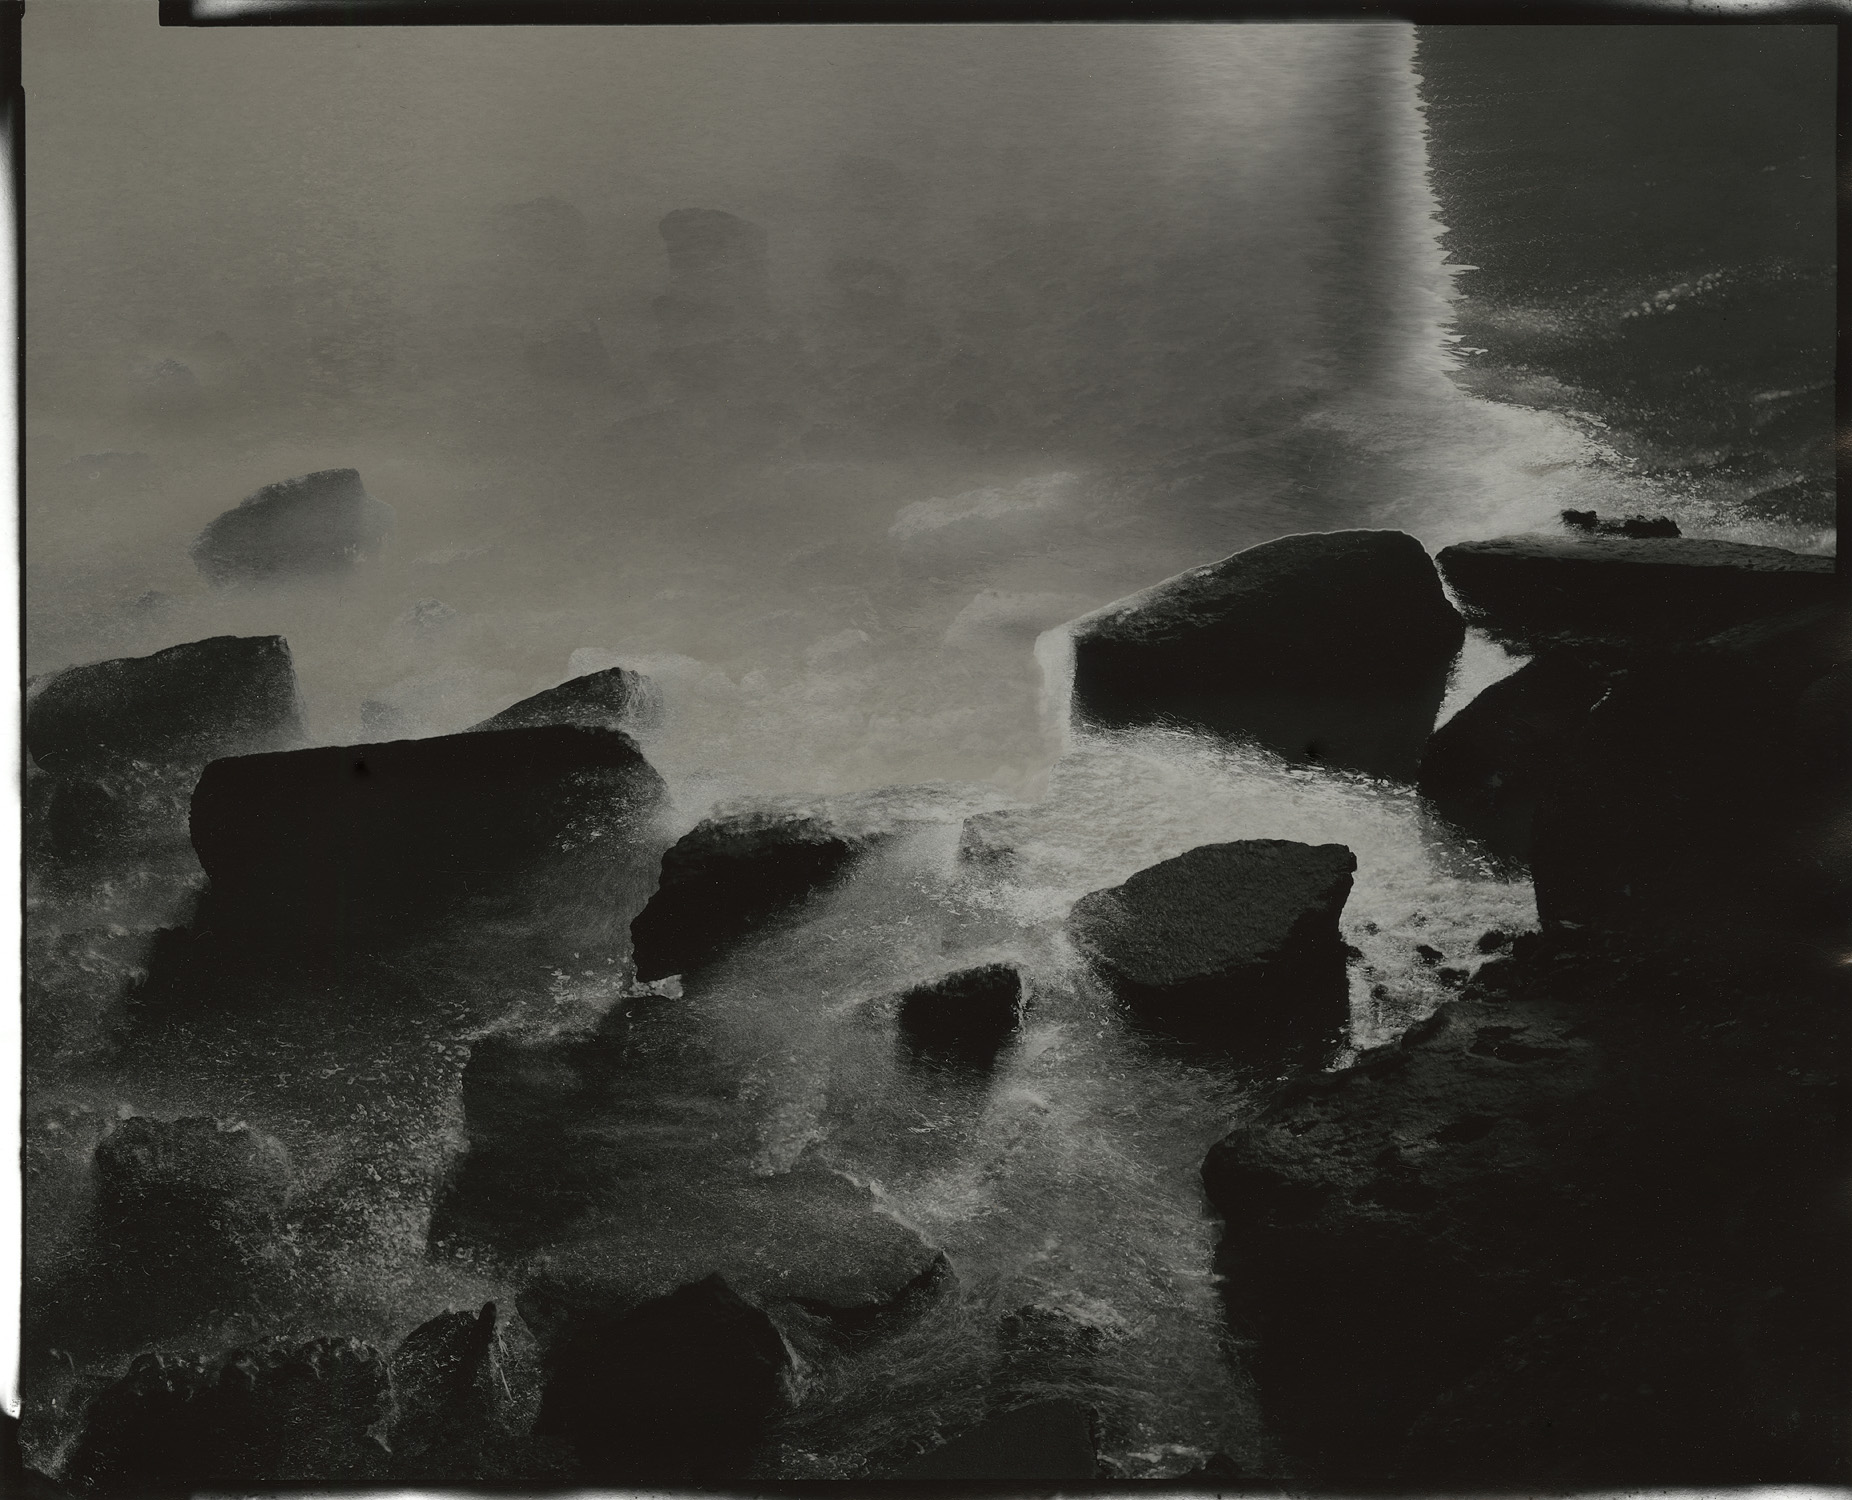 """Tidal #5, 2013. 8""""x10"""" unique gelatin silver paper negative. Courtesy of Haines Gallery, San Francisco"""